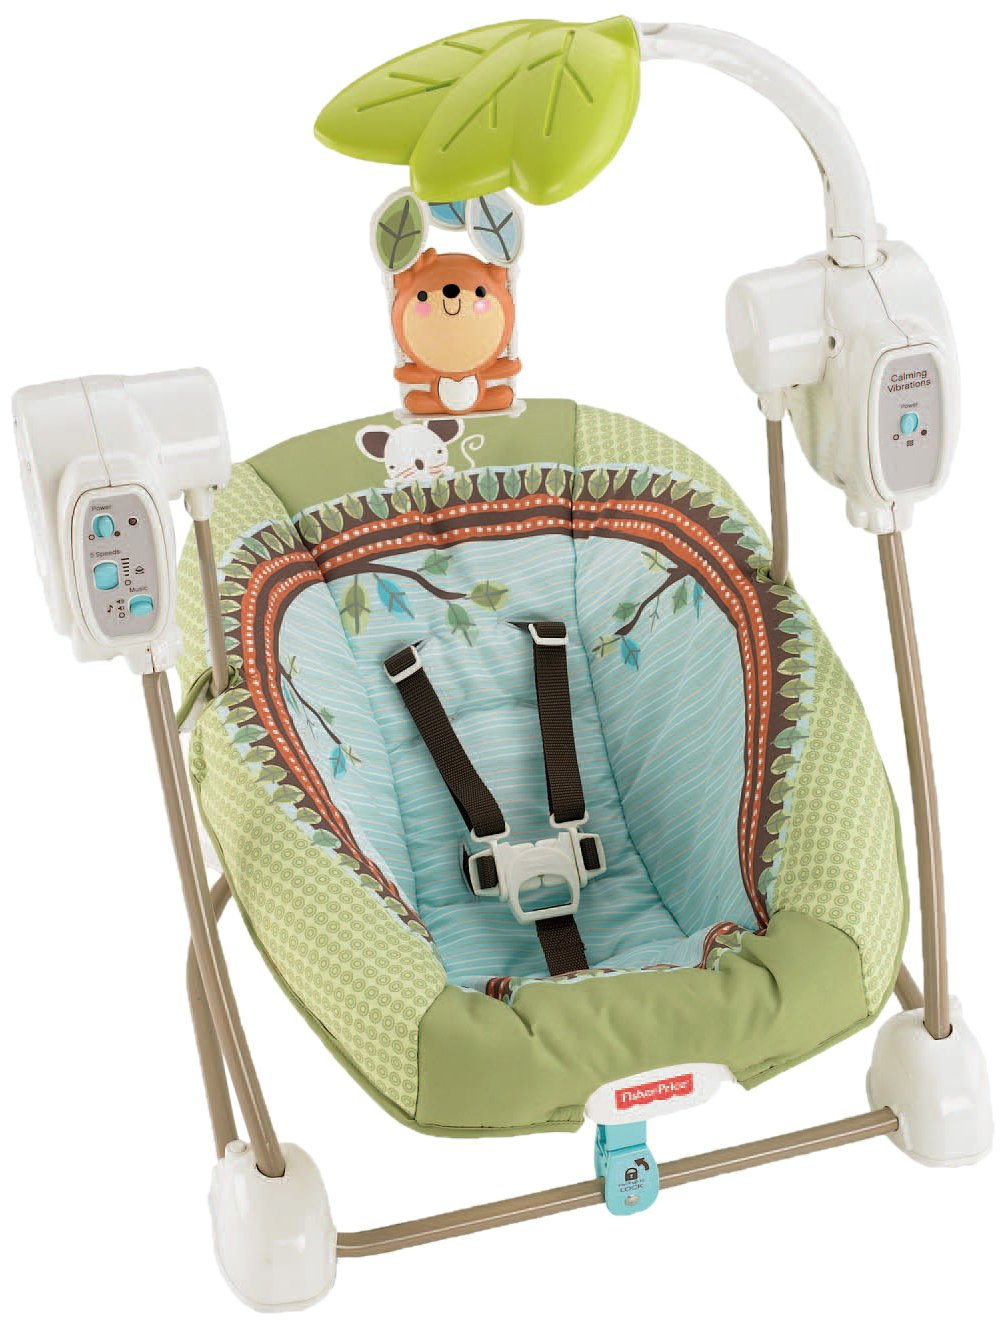 Fisher-Price SpaceSaver Swing and Seat, Forest Fun (Discontinued by Manufacturer)